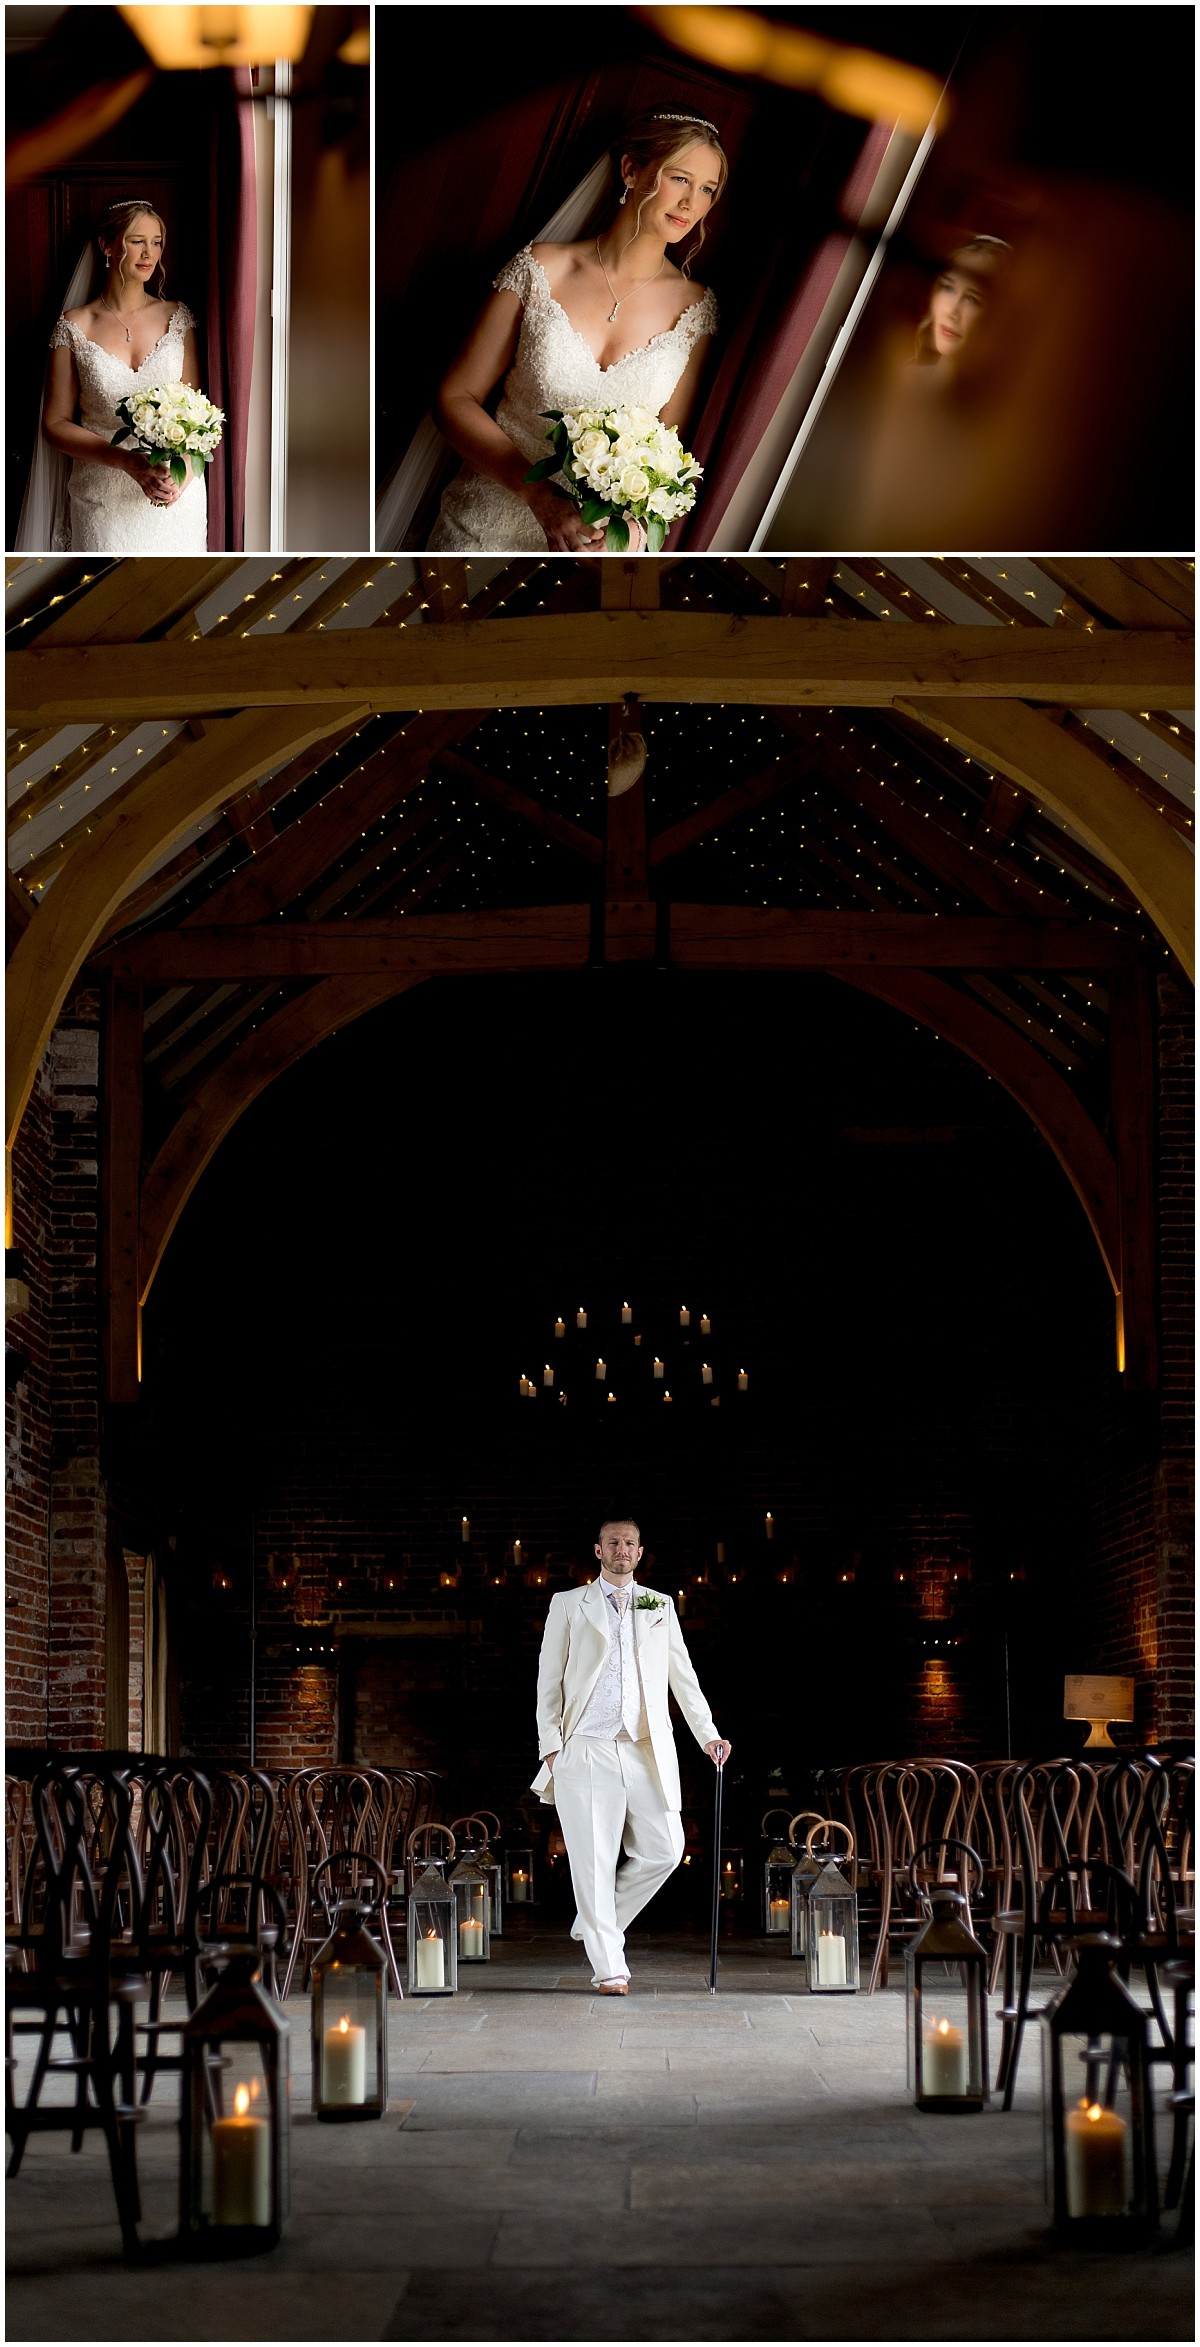 Groom portrait in venue